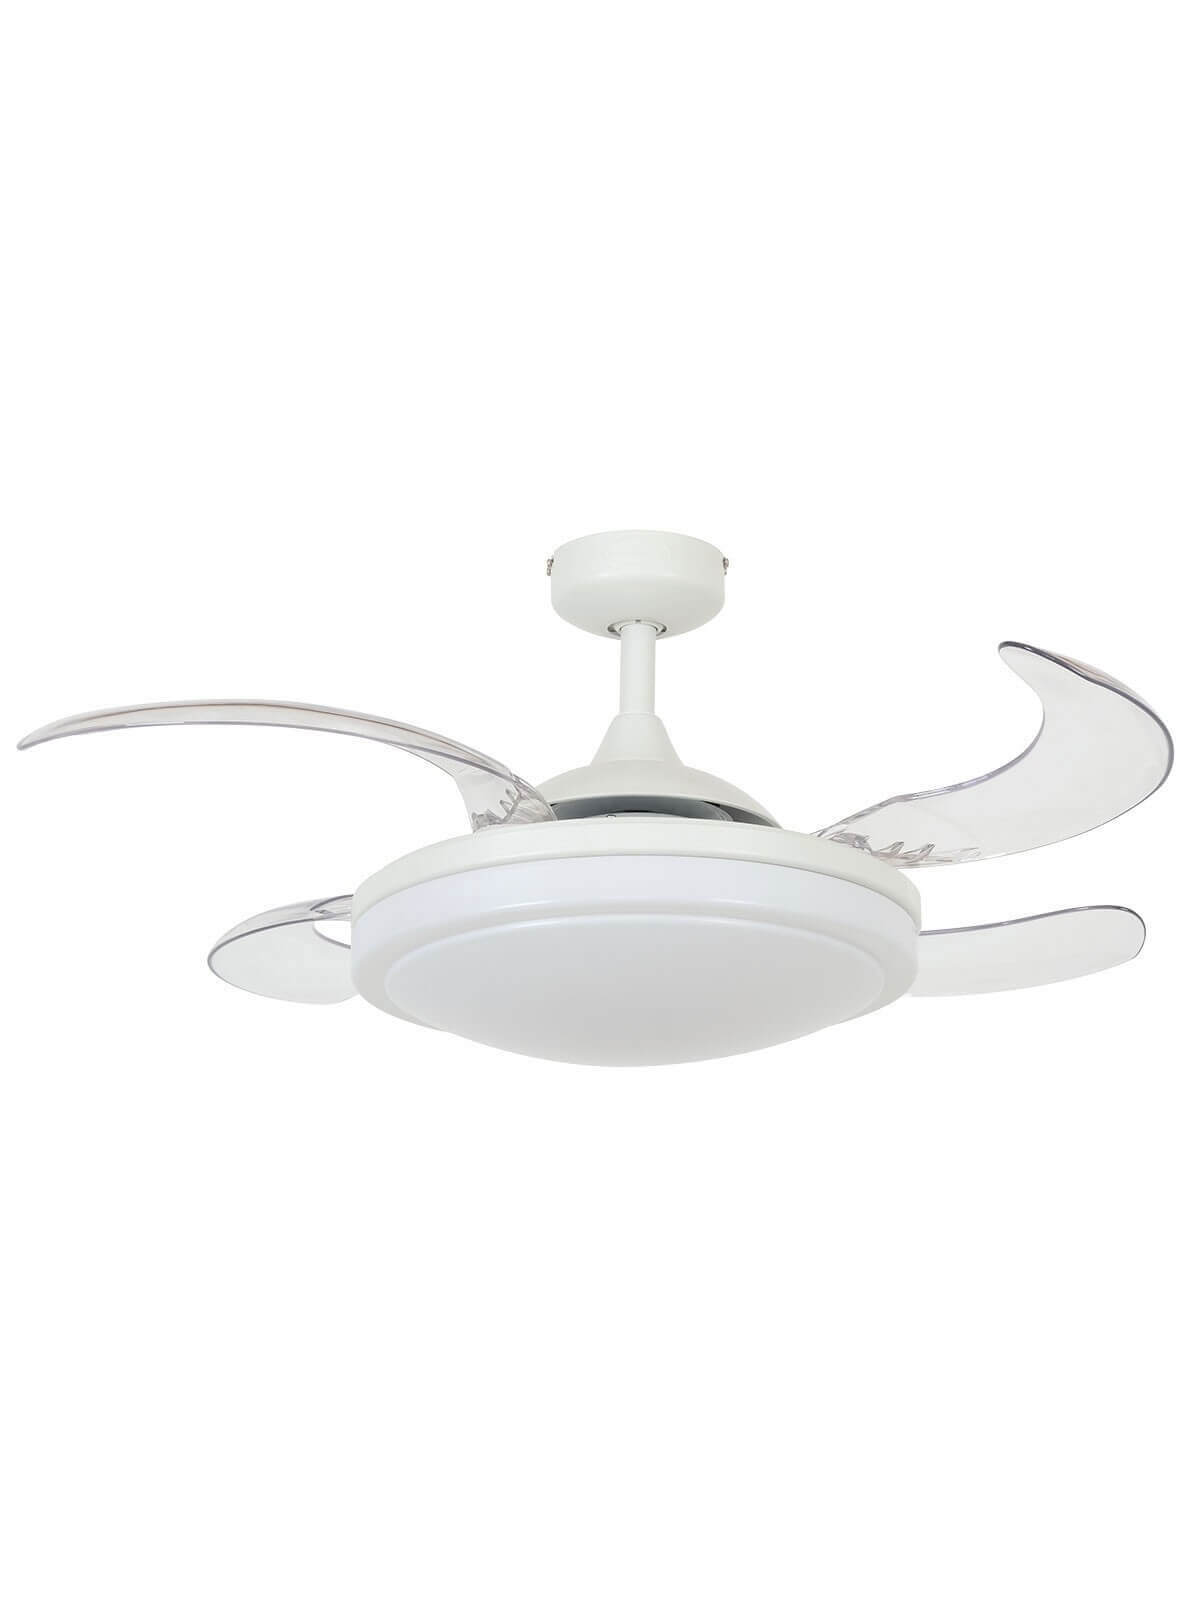 Ceiling Fan Fanaway Evora White With Light And Remote